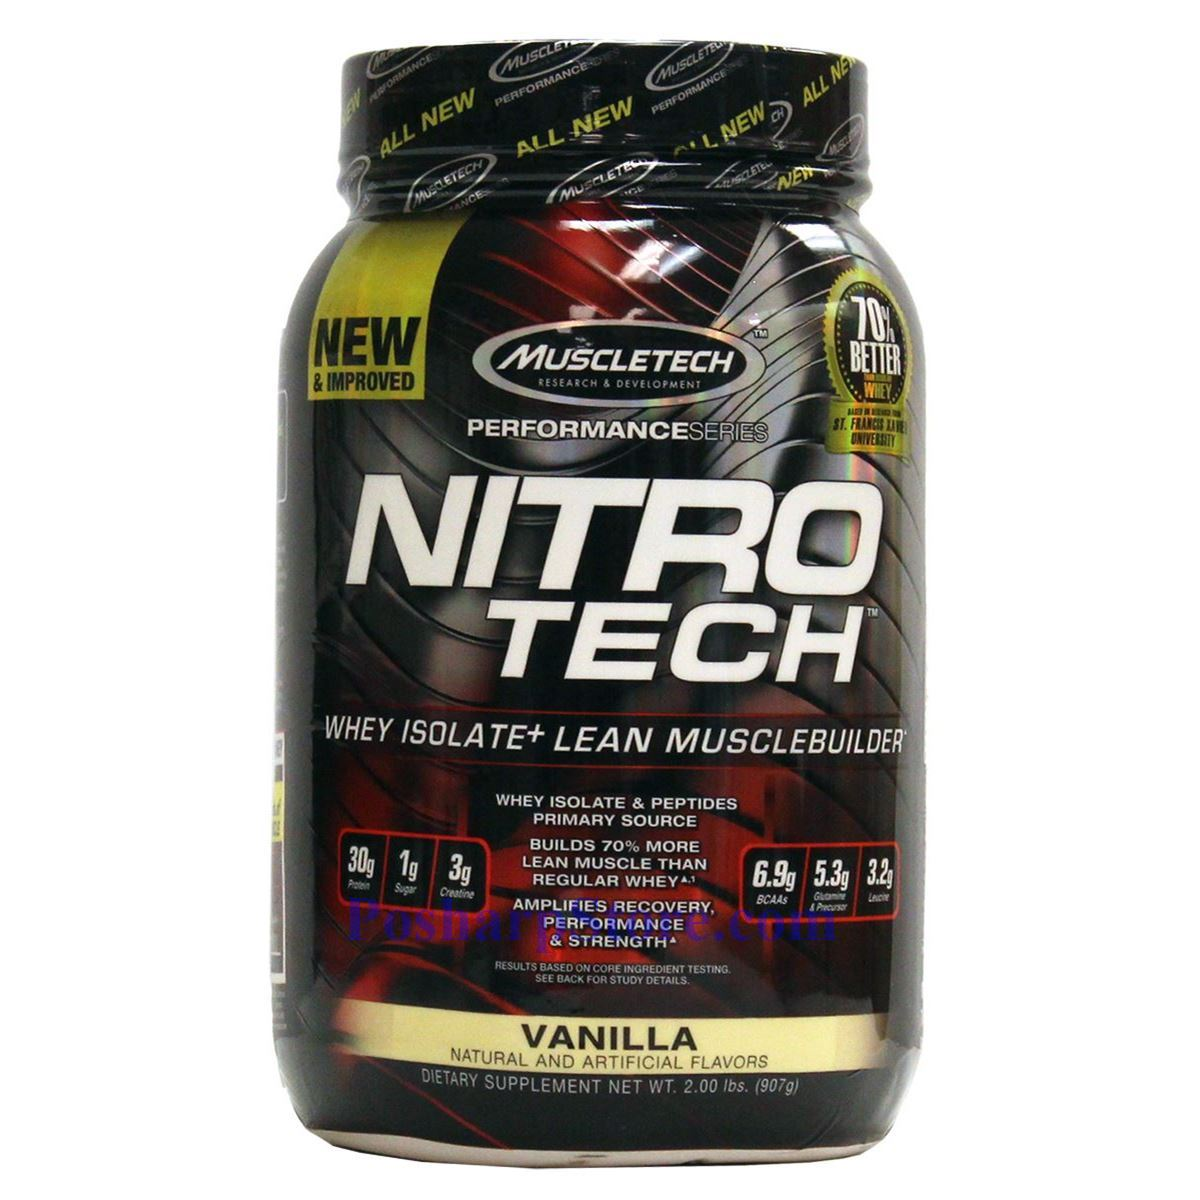 Picture for category Muscletech Performance Series Nitro-Tech Vanilla 2 lbs 21 Servings